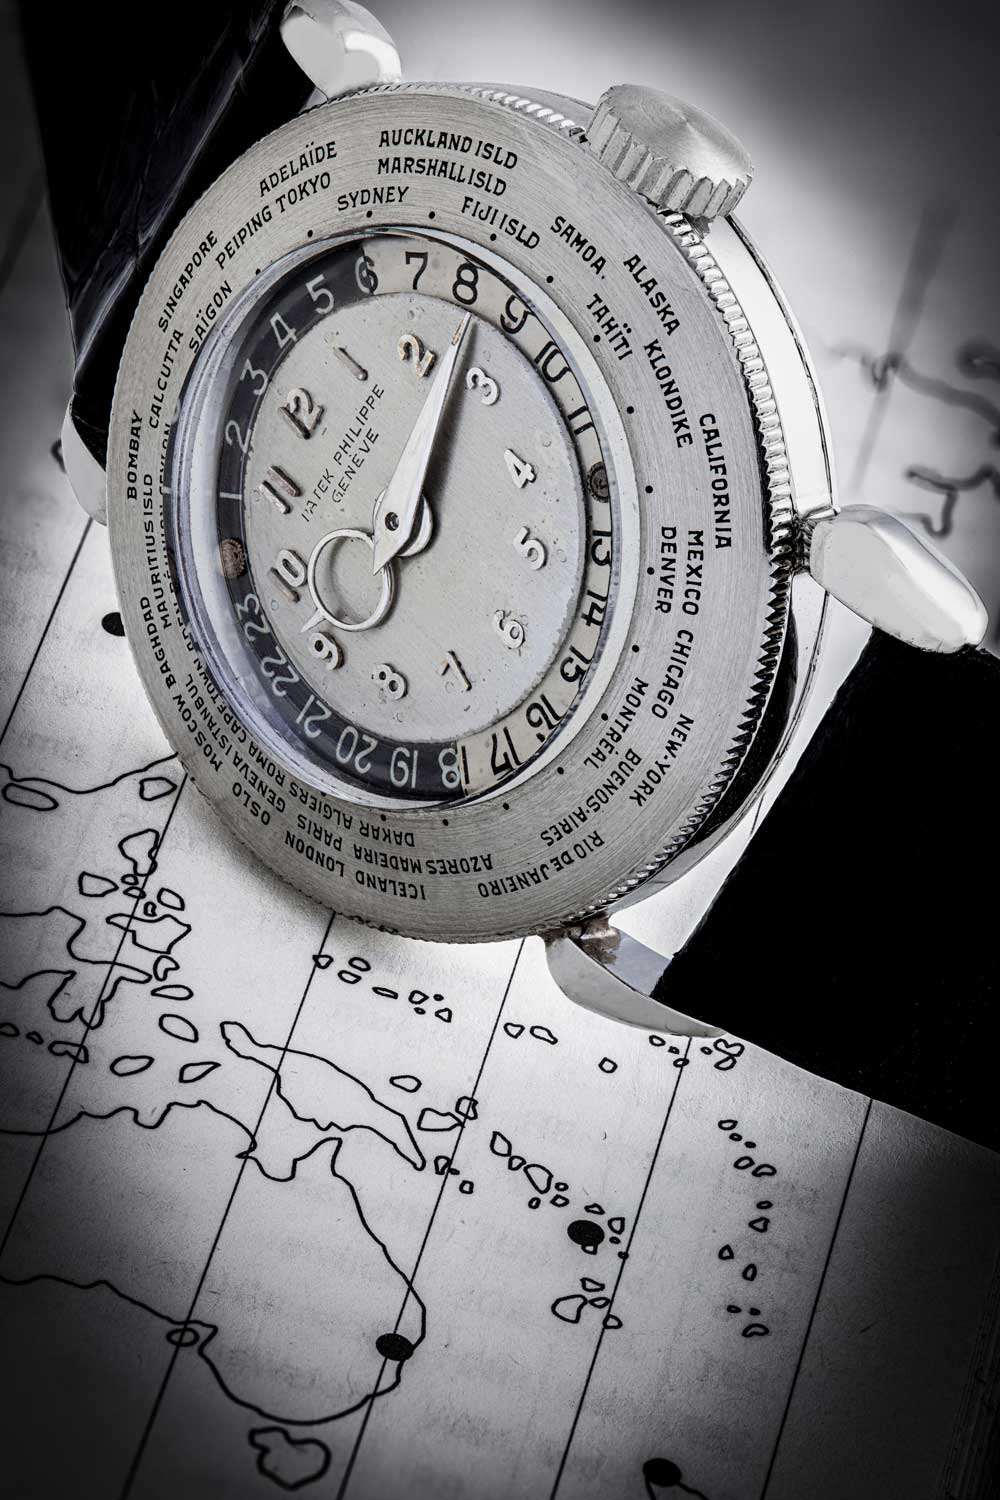 Patek Philippe platinum reference 1415 HU, the only piece of its kind in the world